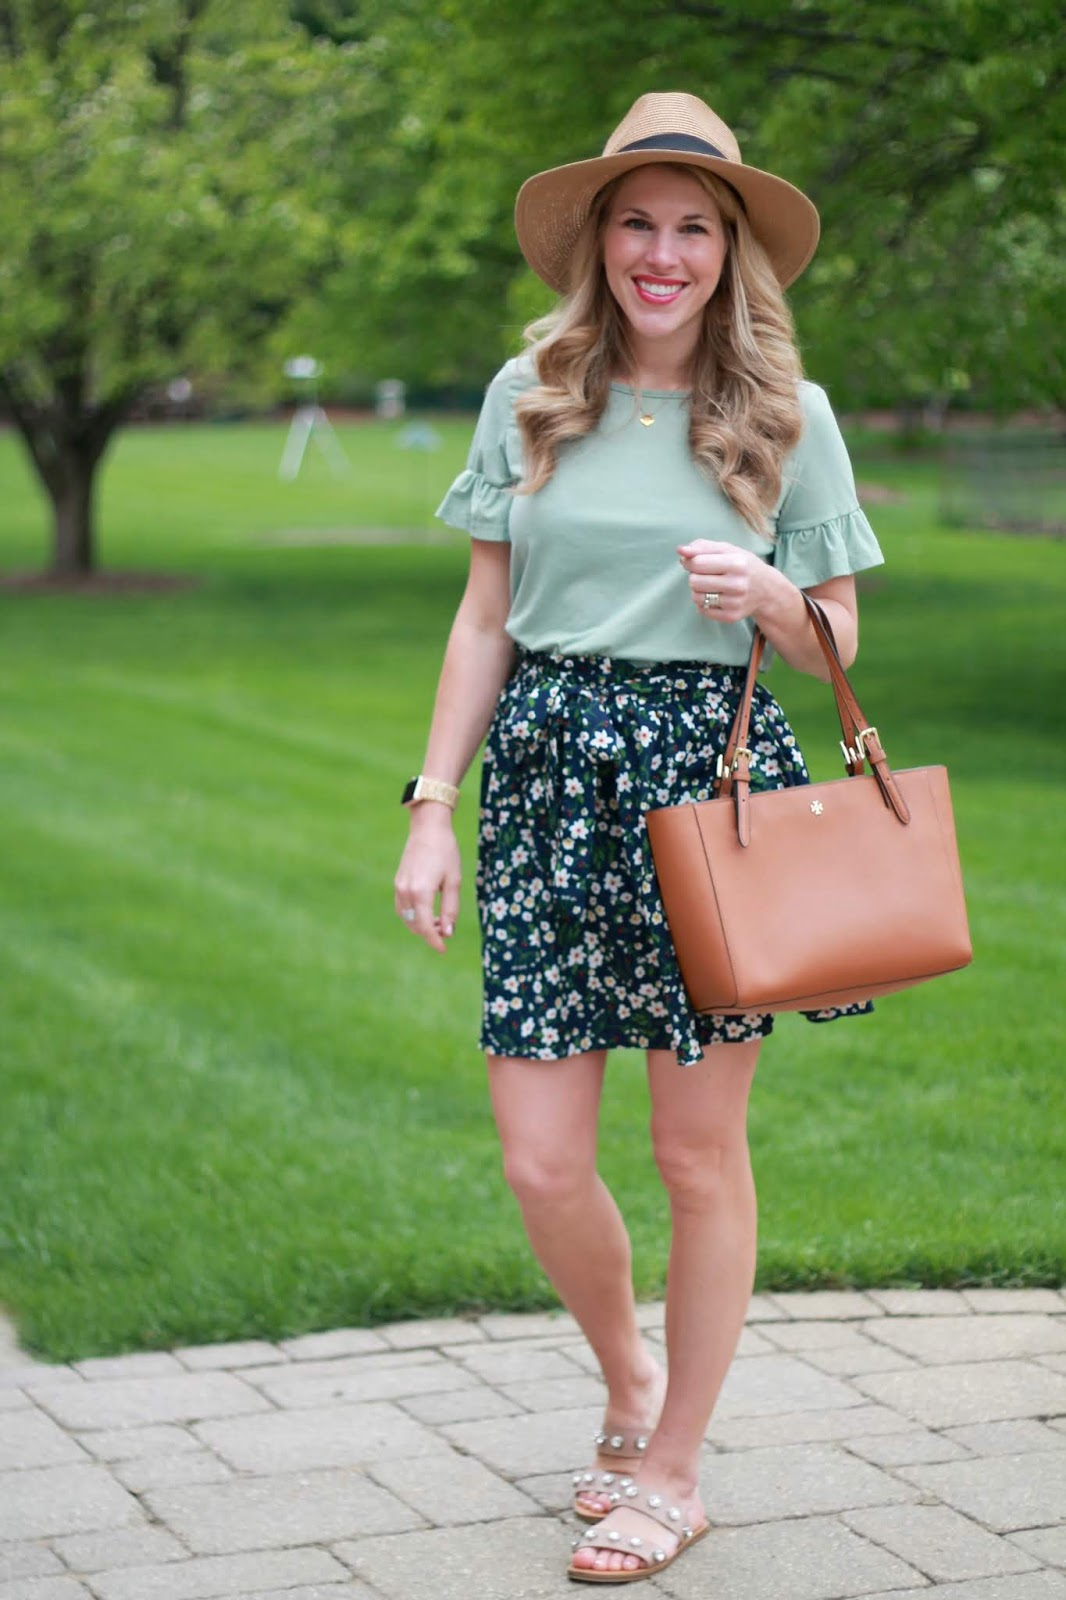 spring trend review, spring trends, pink striped jumpsuit, blush tennis shoes, snakeskin blouse, snakeskin wedges, mint tunic, blue floral paper bag skirt, green ruffle top, camo tee, pink jacket,